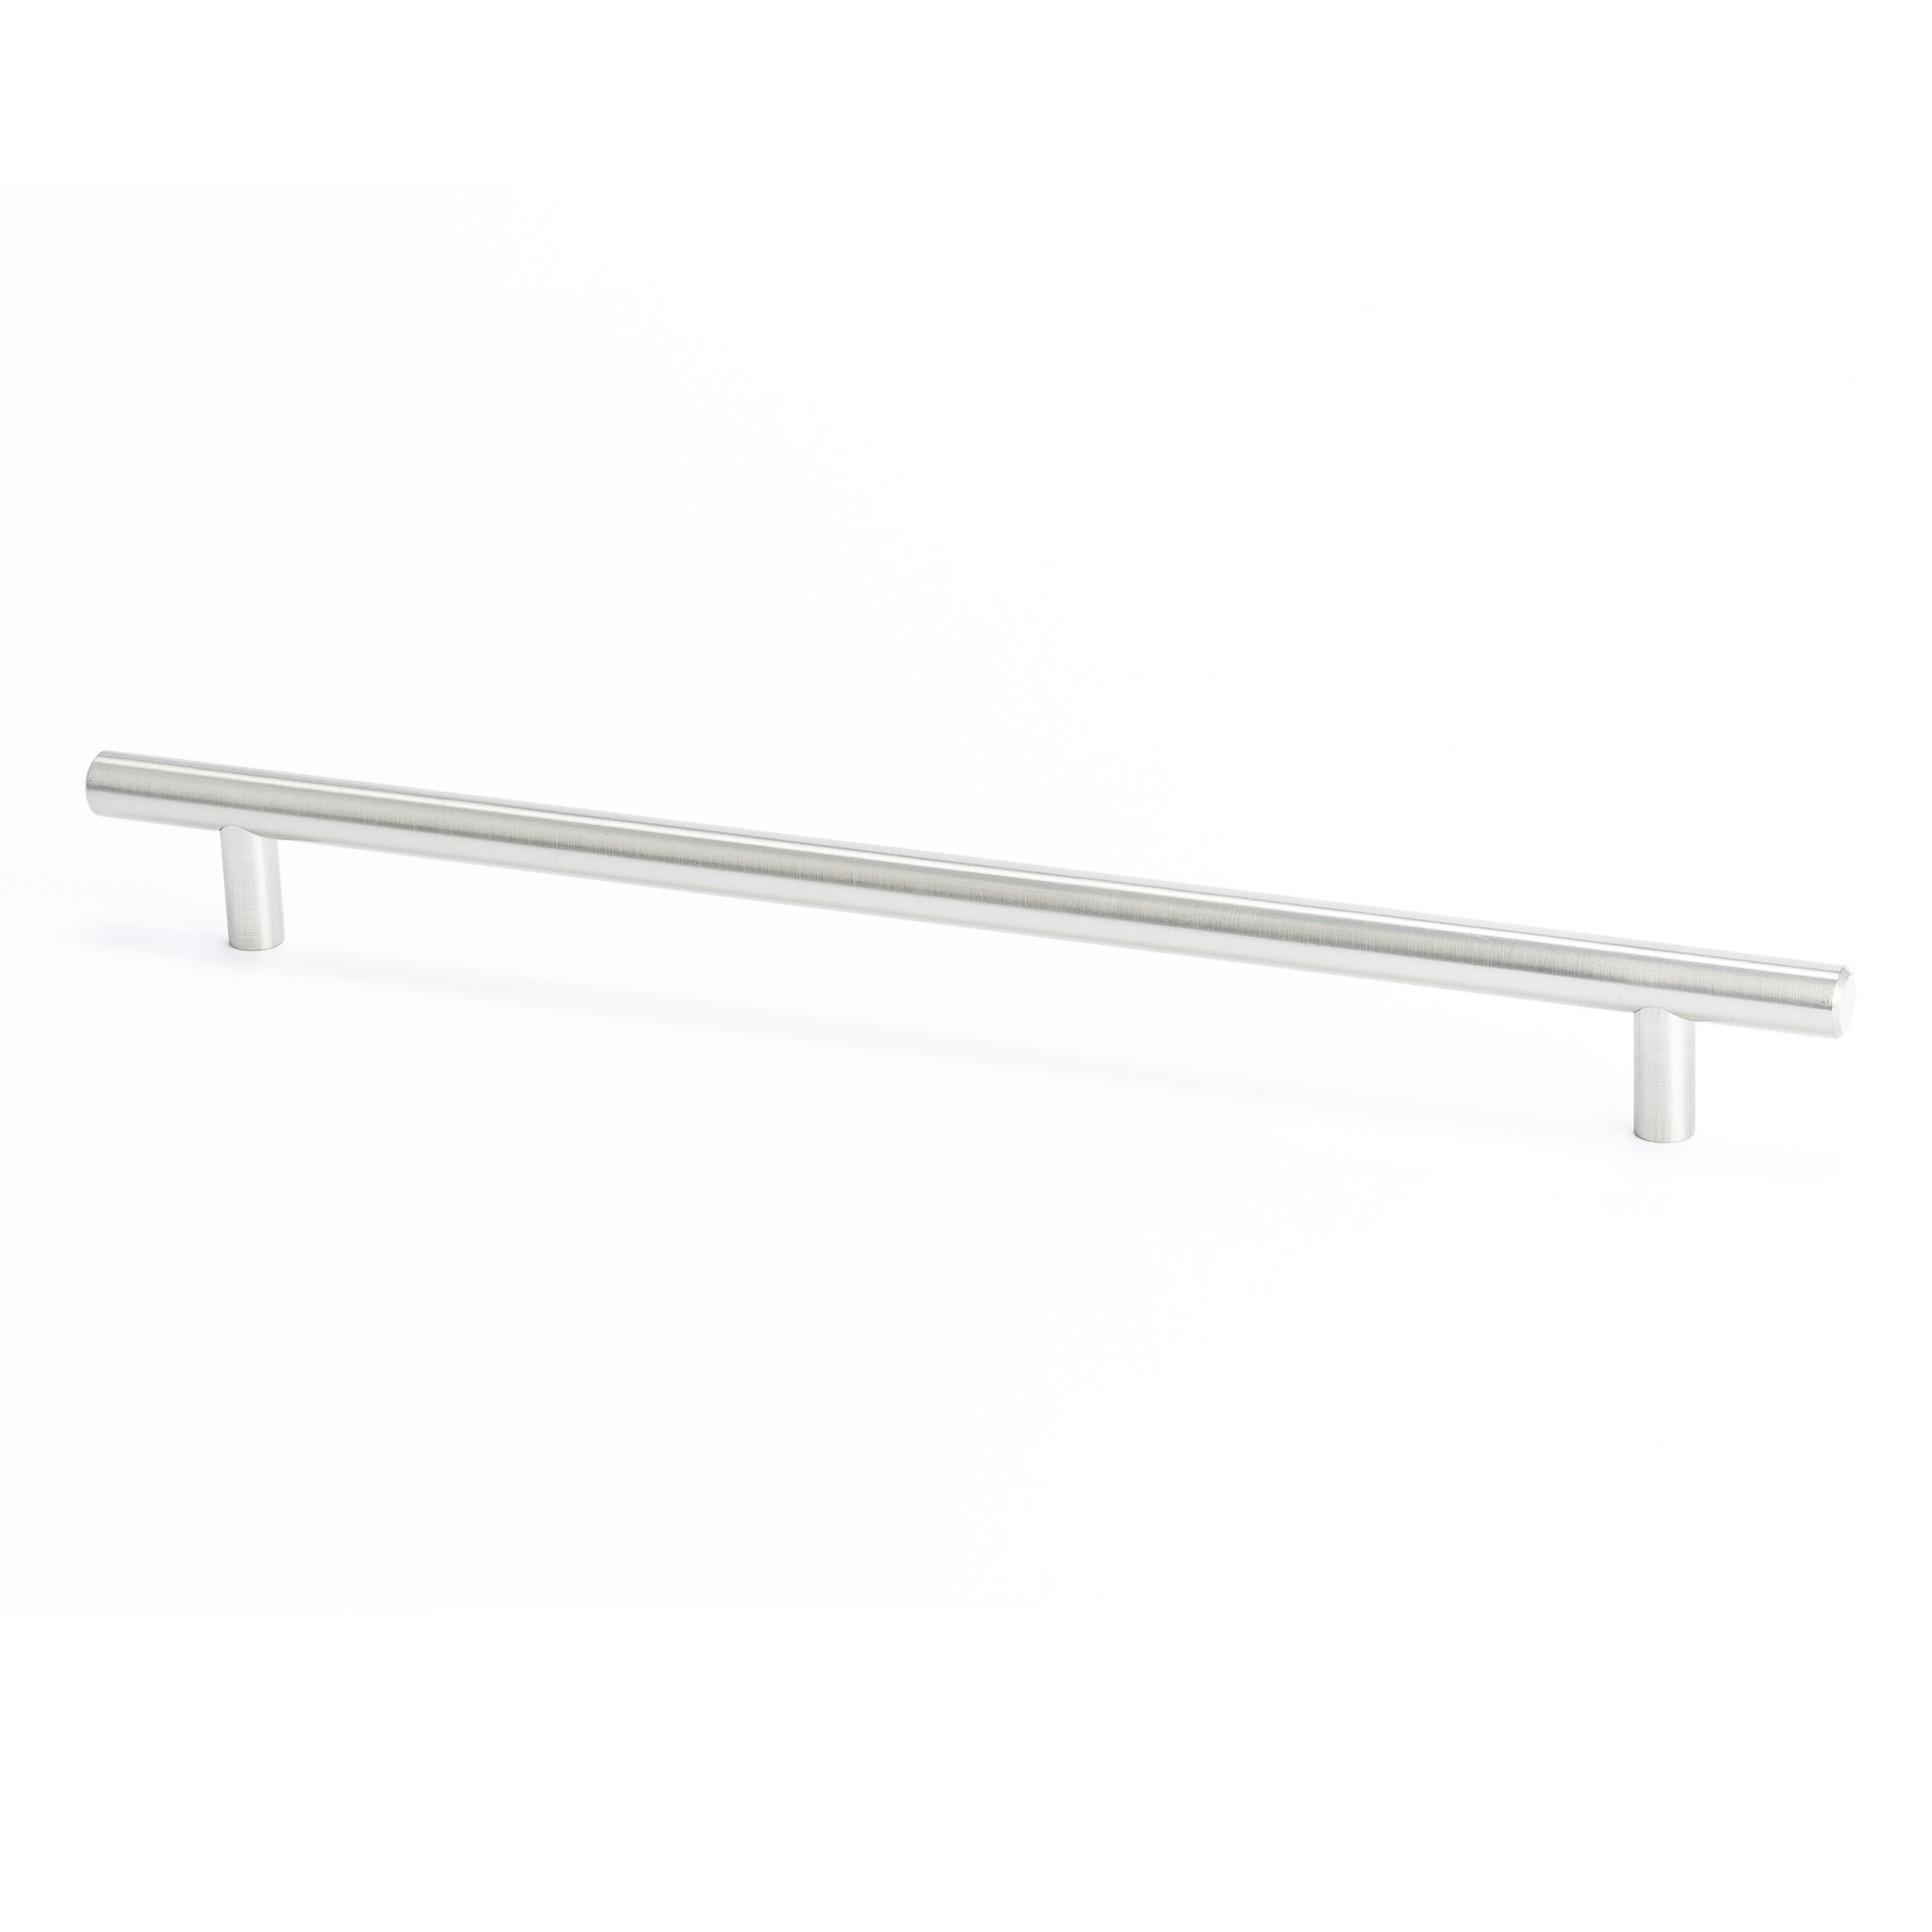 Pull (Brushed Nickel) - 256mm